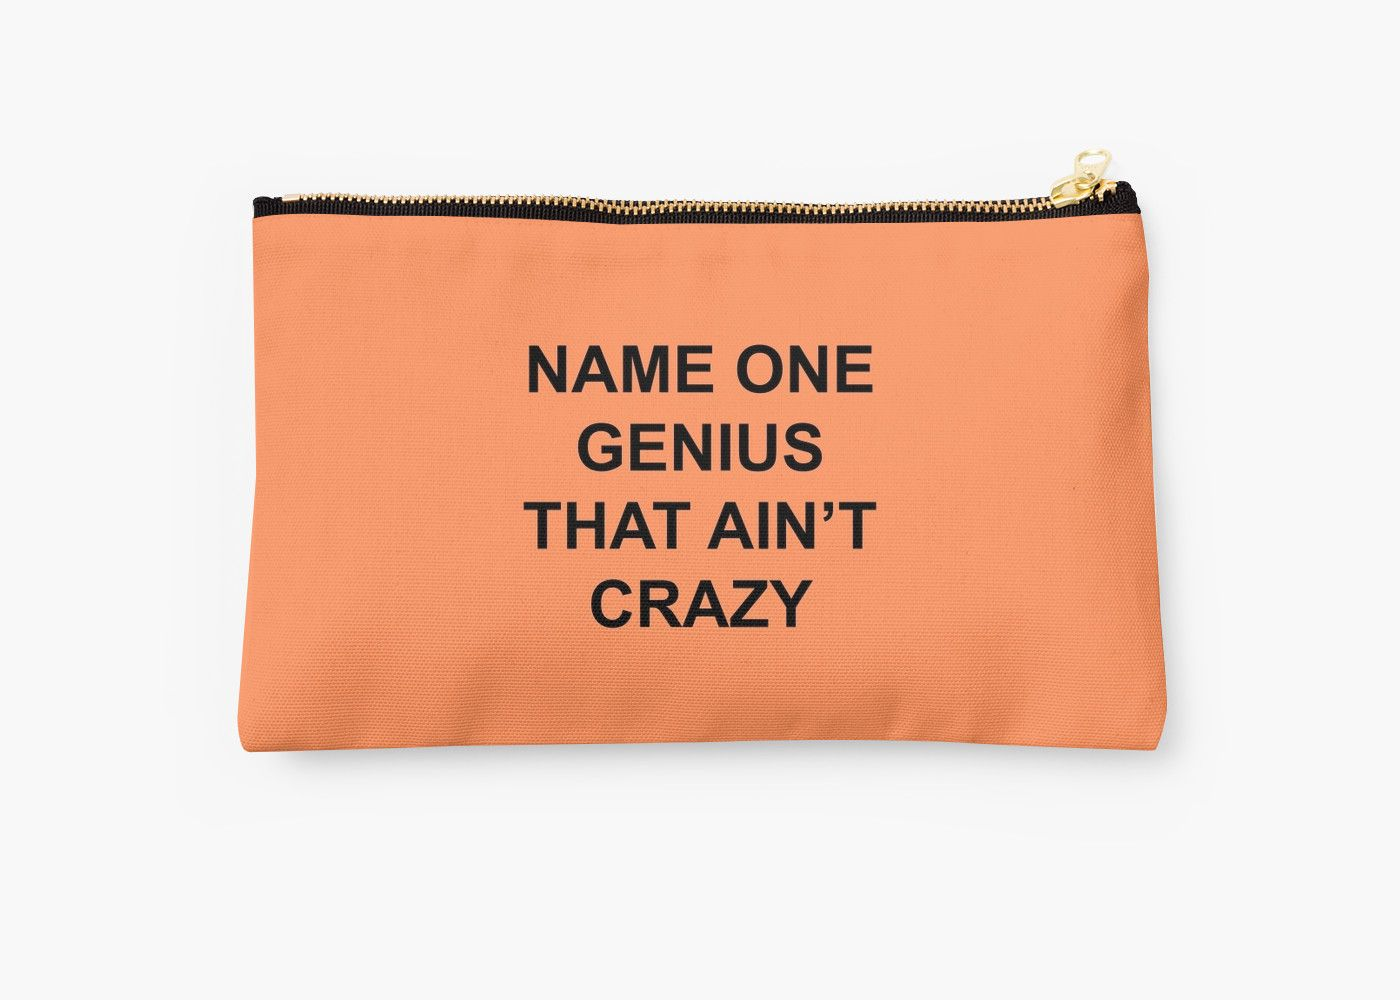 Name One Genius That Ain T Crazy Kanye West Feedback The Life Of Pablo Also Buy This Artwork On Bags Apparel Sti Genius Gifts For Family Zipper Pouch